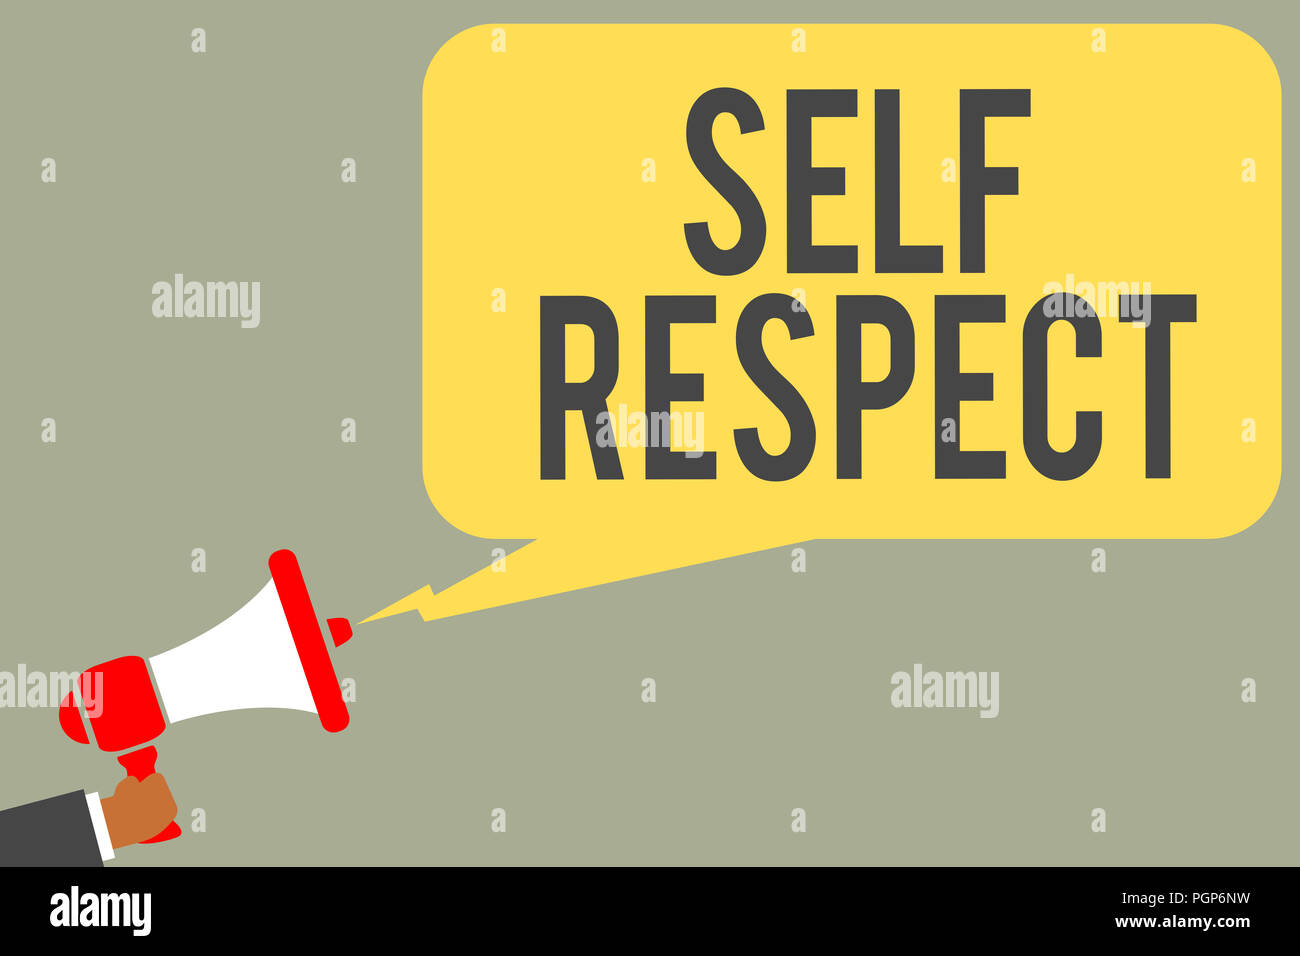 showing self respect